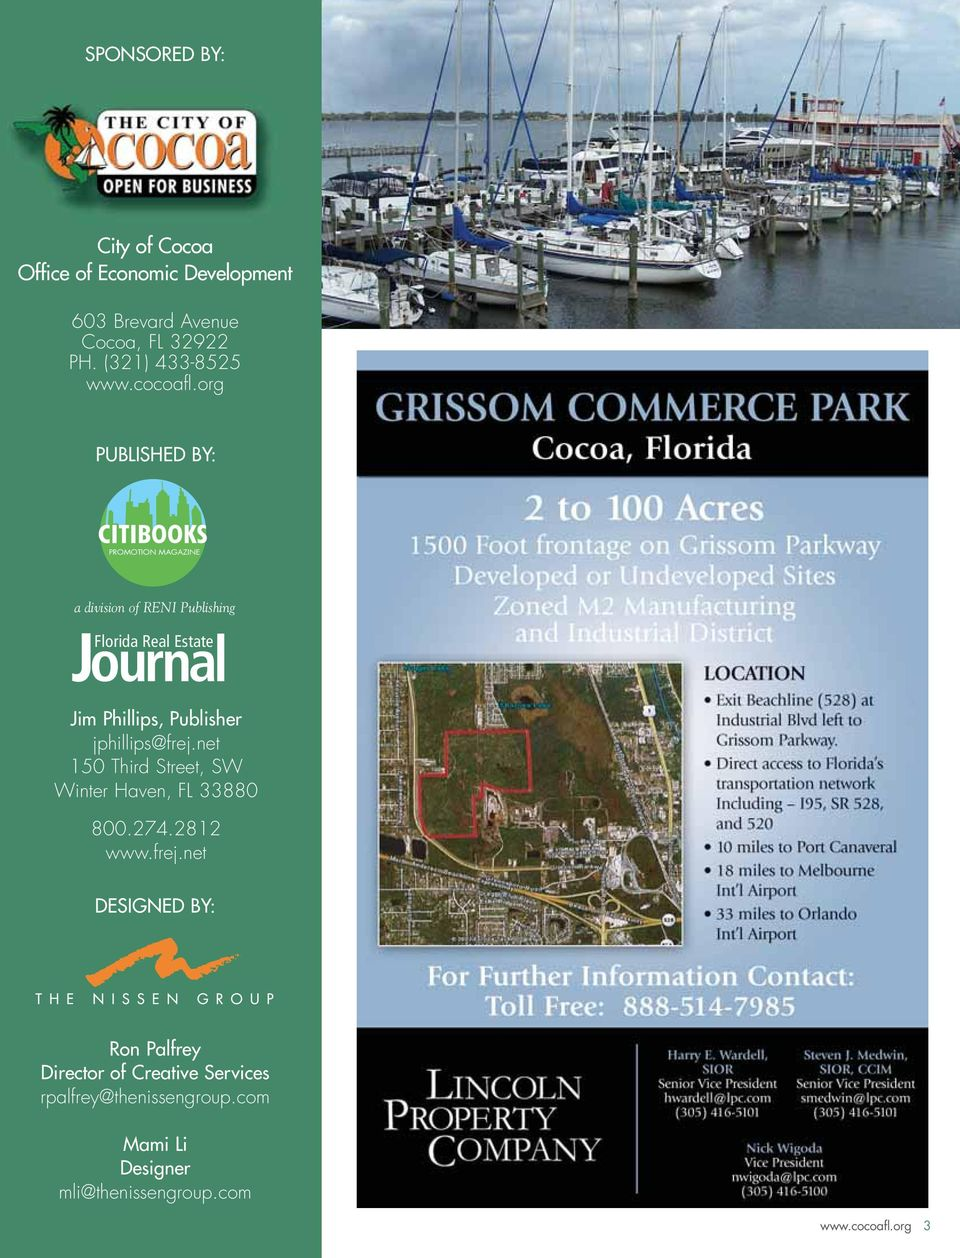 org PUBLISHED BY: PROMOTION MAGAZINE a division of RENI Publishing Journa Florida Real Estate I Jim Phillips,